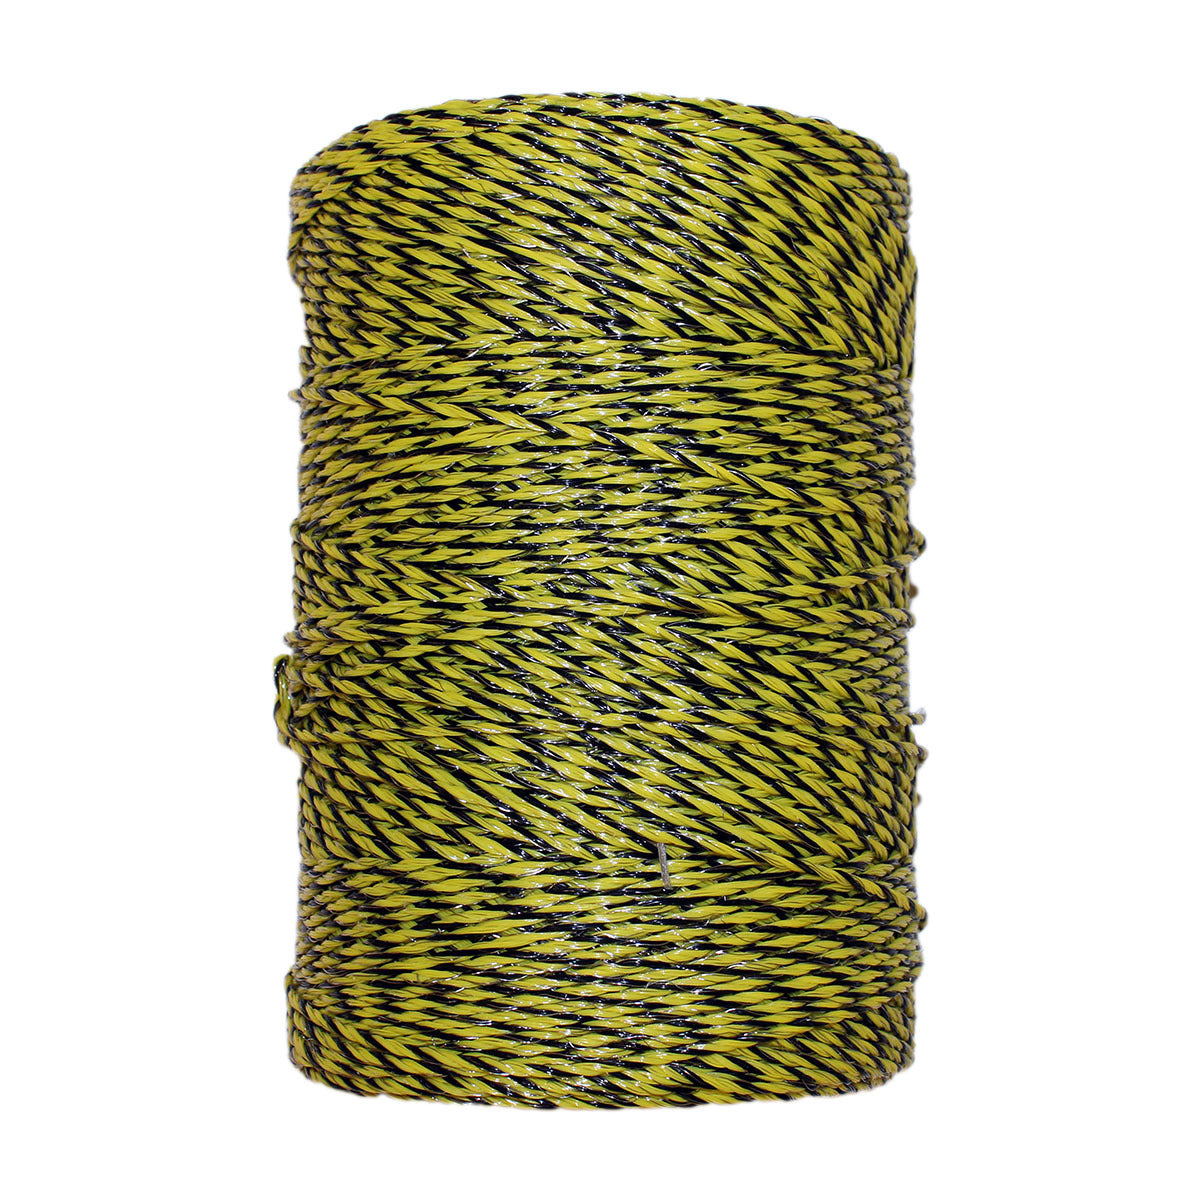 Electric Fence Polywire 1312', Yellow/Black